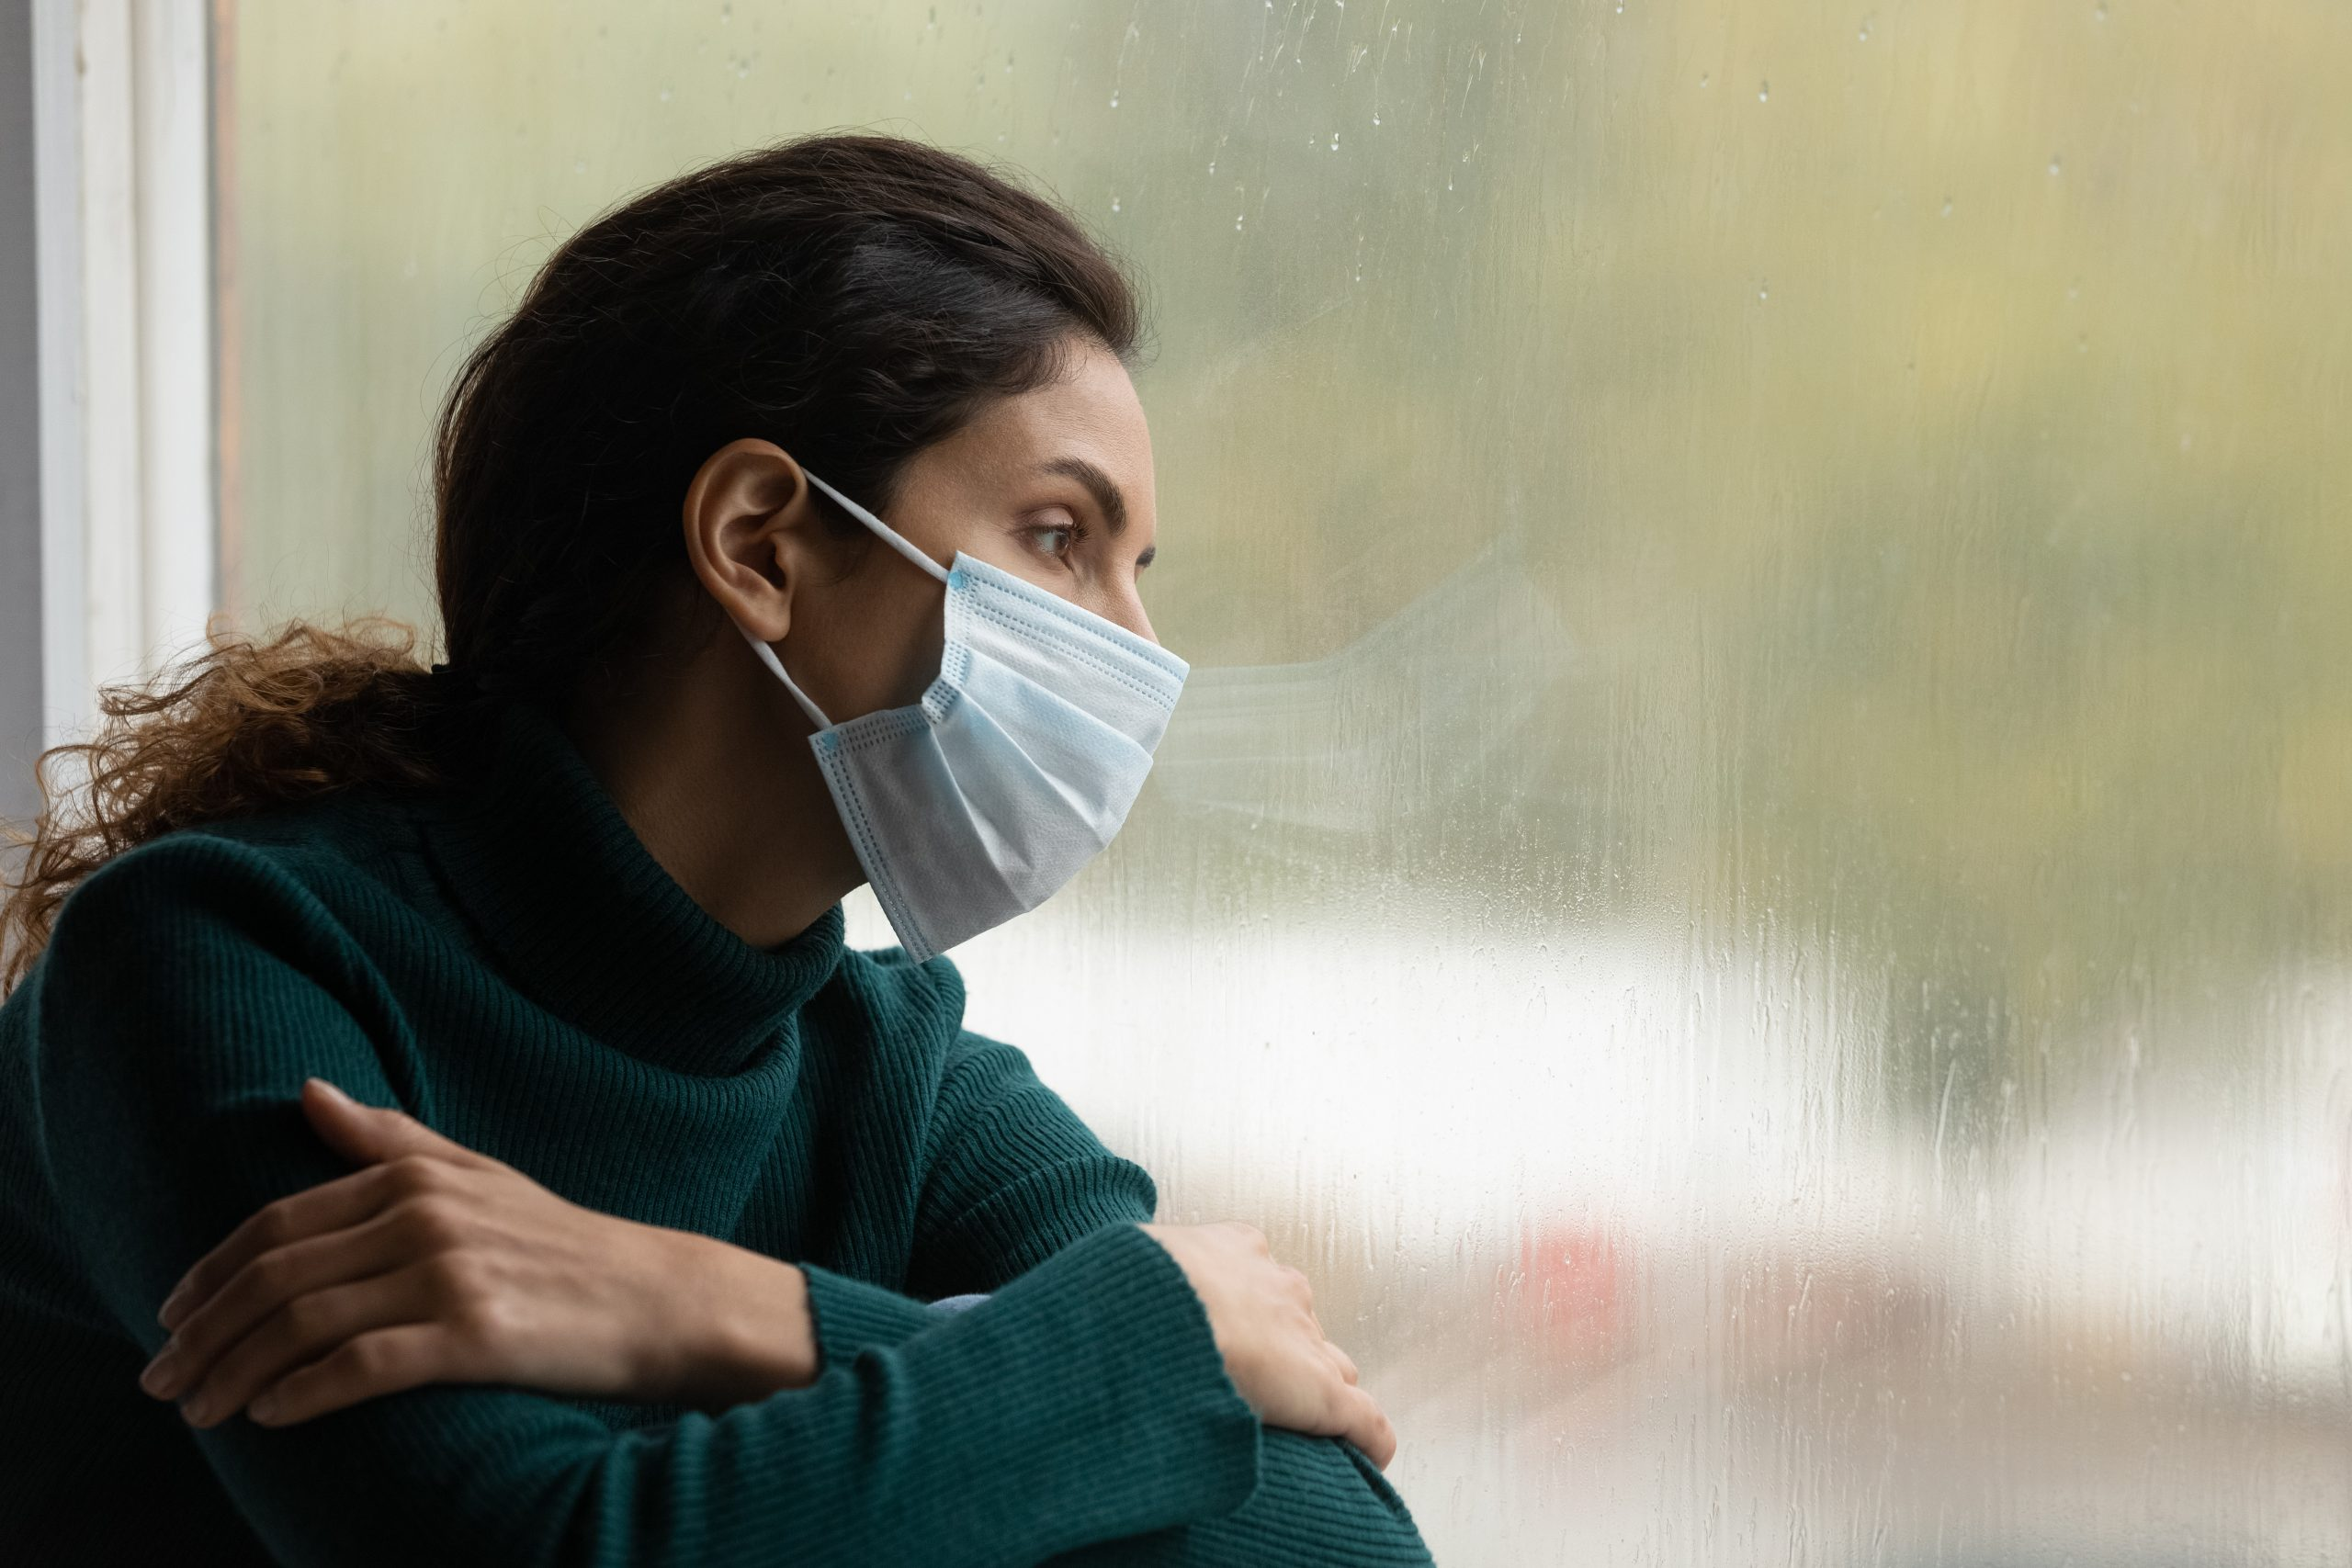 A woman in a face mask looks out through a window. Used to signify looking forward in terms of pandemic preparedness